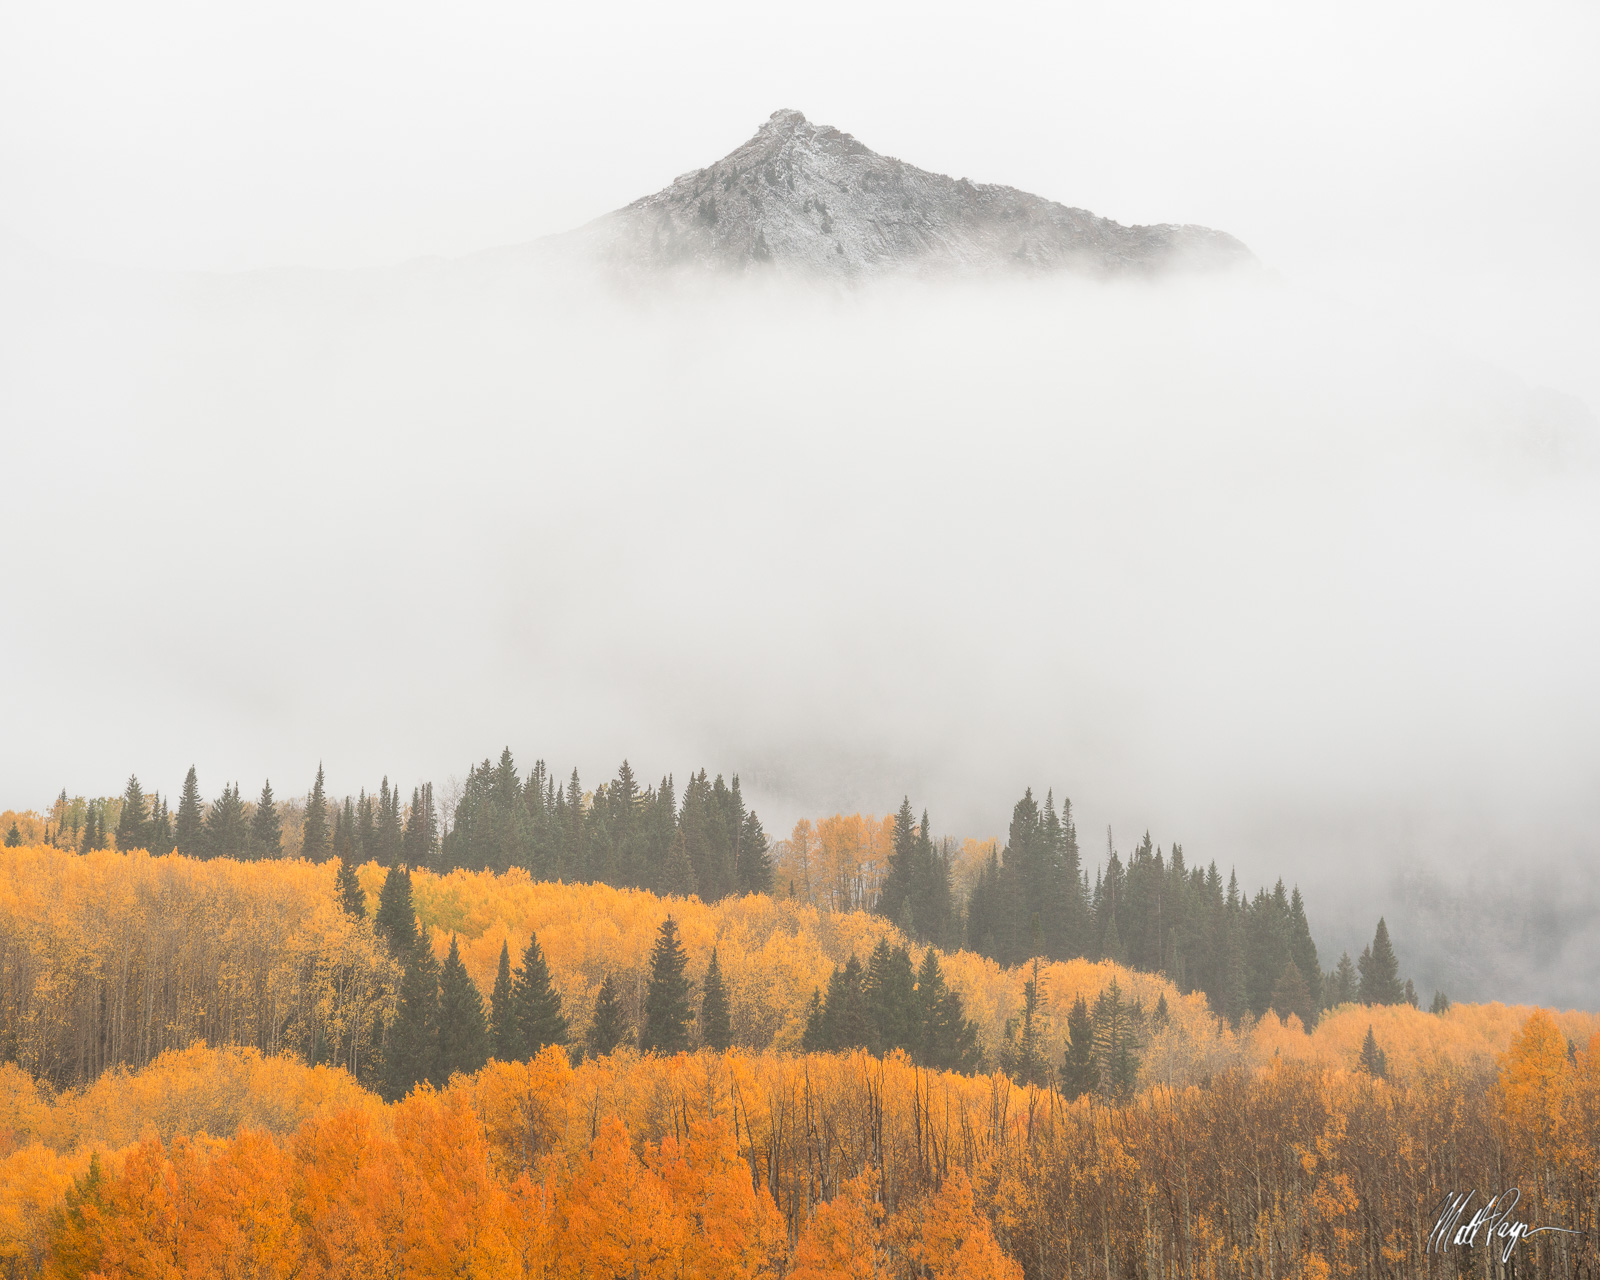 Autumn, Colorado, Fall, Fall Colors, Fog, Landscape, Moody, storm, East Beckwith, mountain, drama, West Elk Mountains, photo